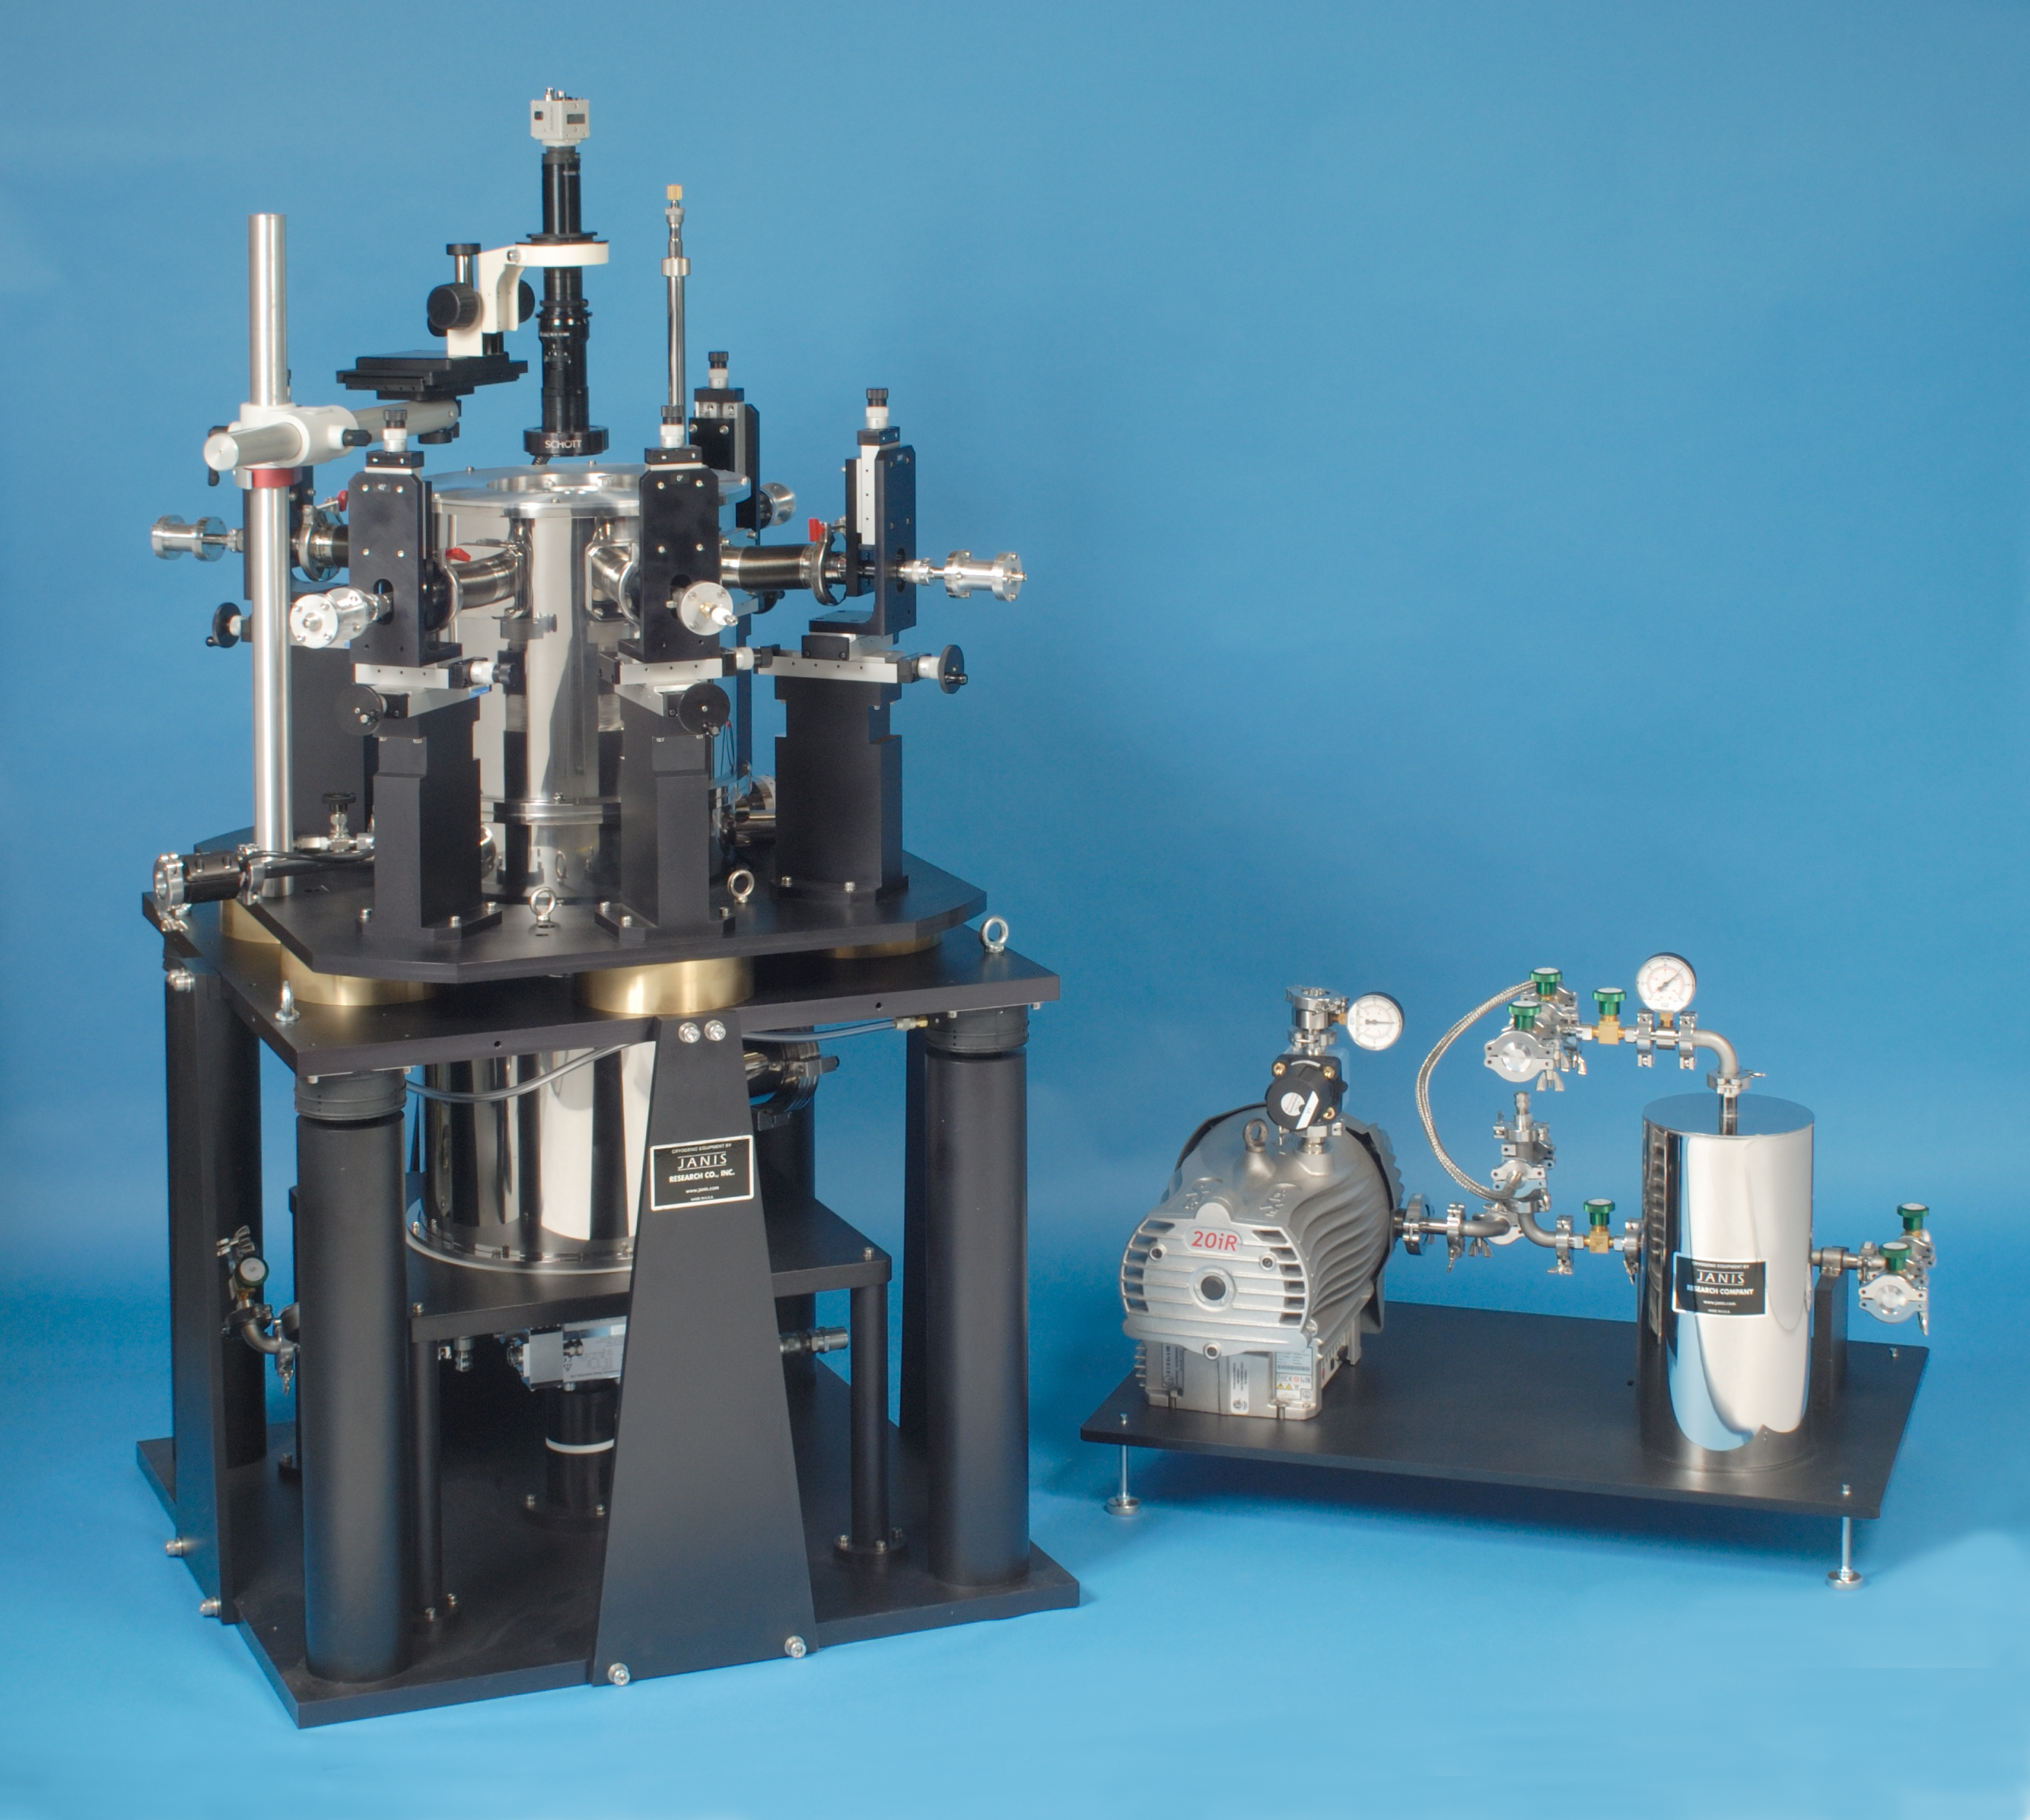 Superconducting cryogen-free probe station